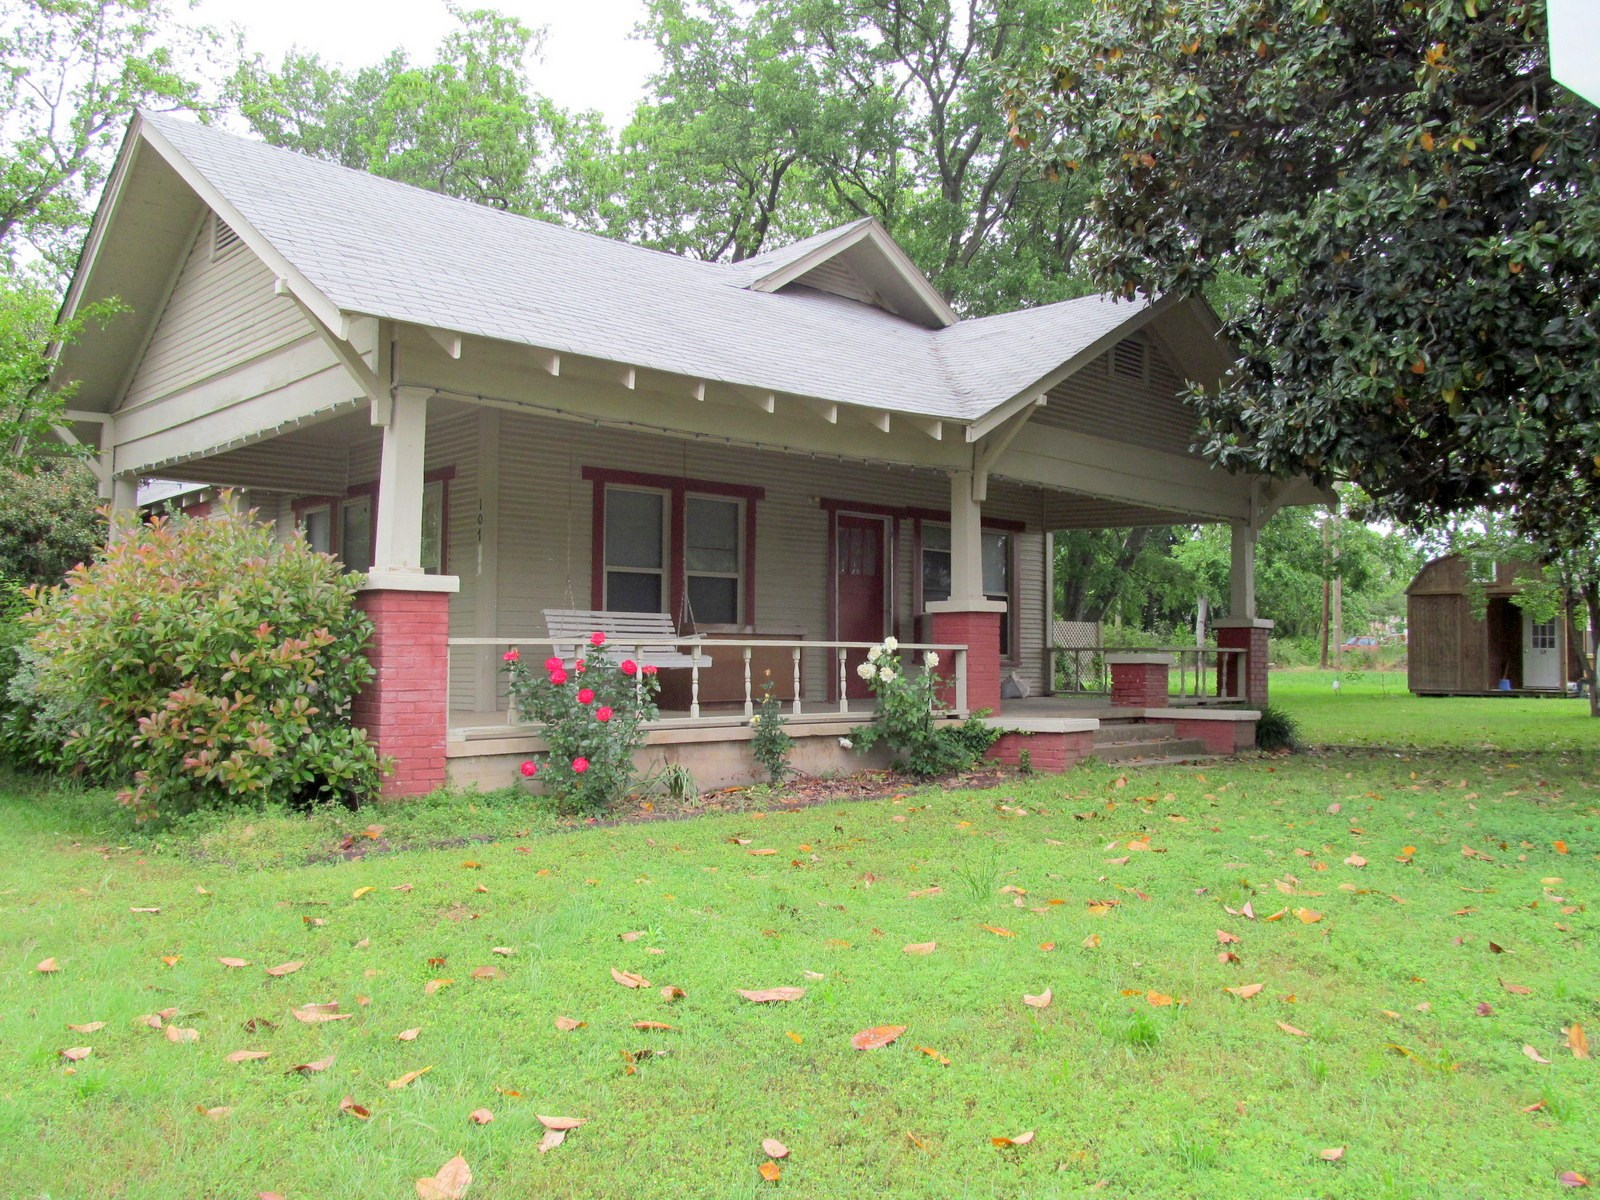 MOVE IN READY 1930 COTTAGE STYLE HOME IN WINNSBORO TEXAS